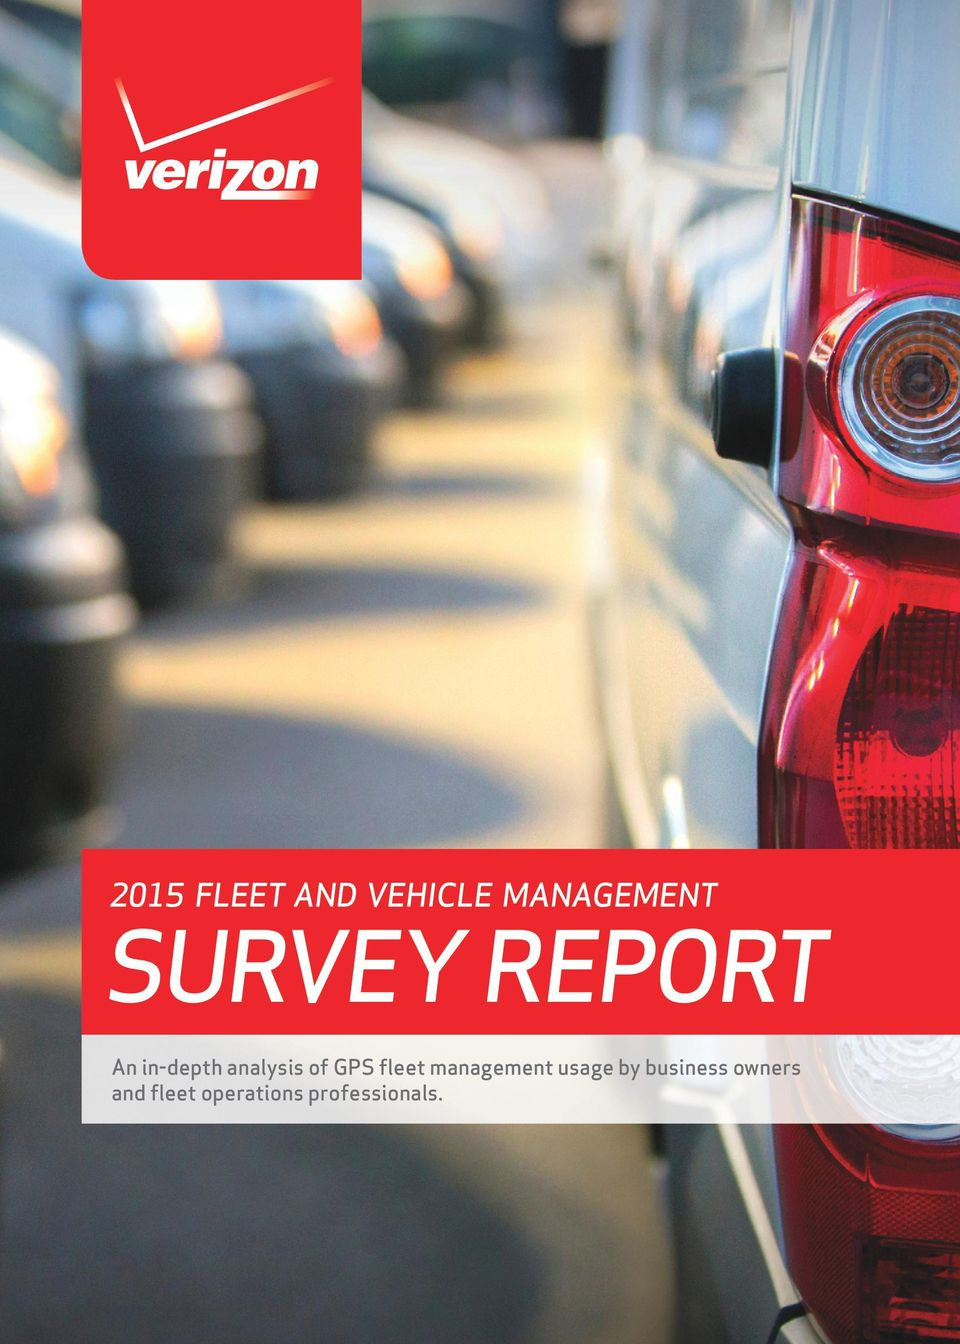 GPS fleet management usage by business